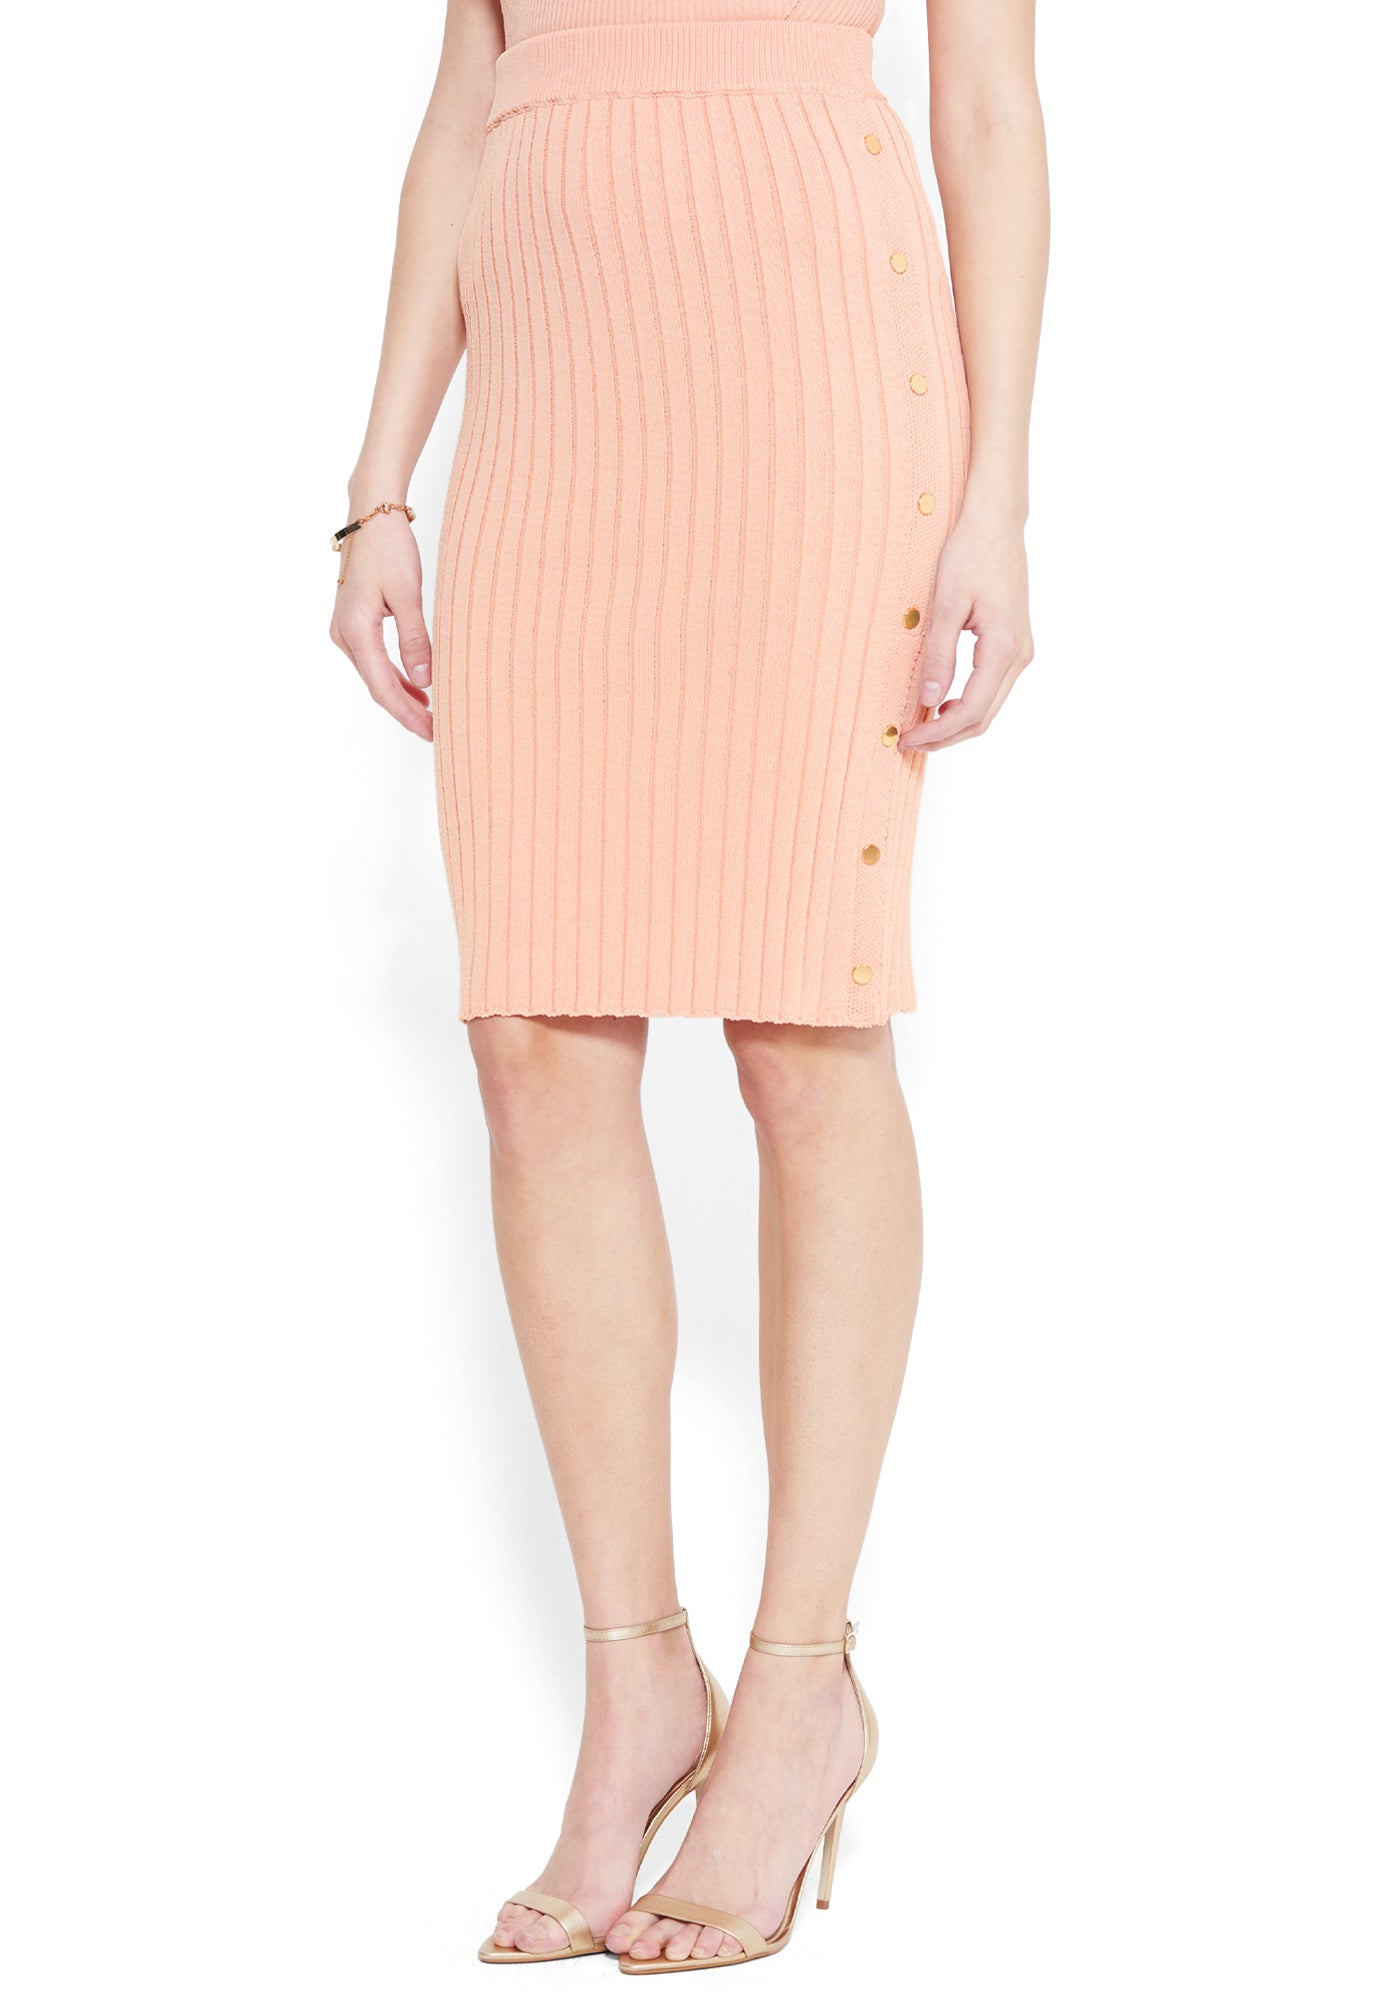 Bebe Women's Isla Side Slit Skirt, Size XXS in CAMEO ROSE Viscose